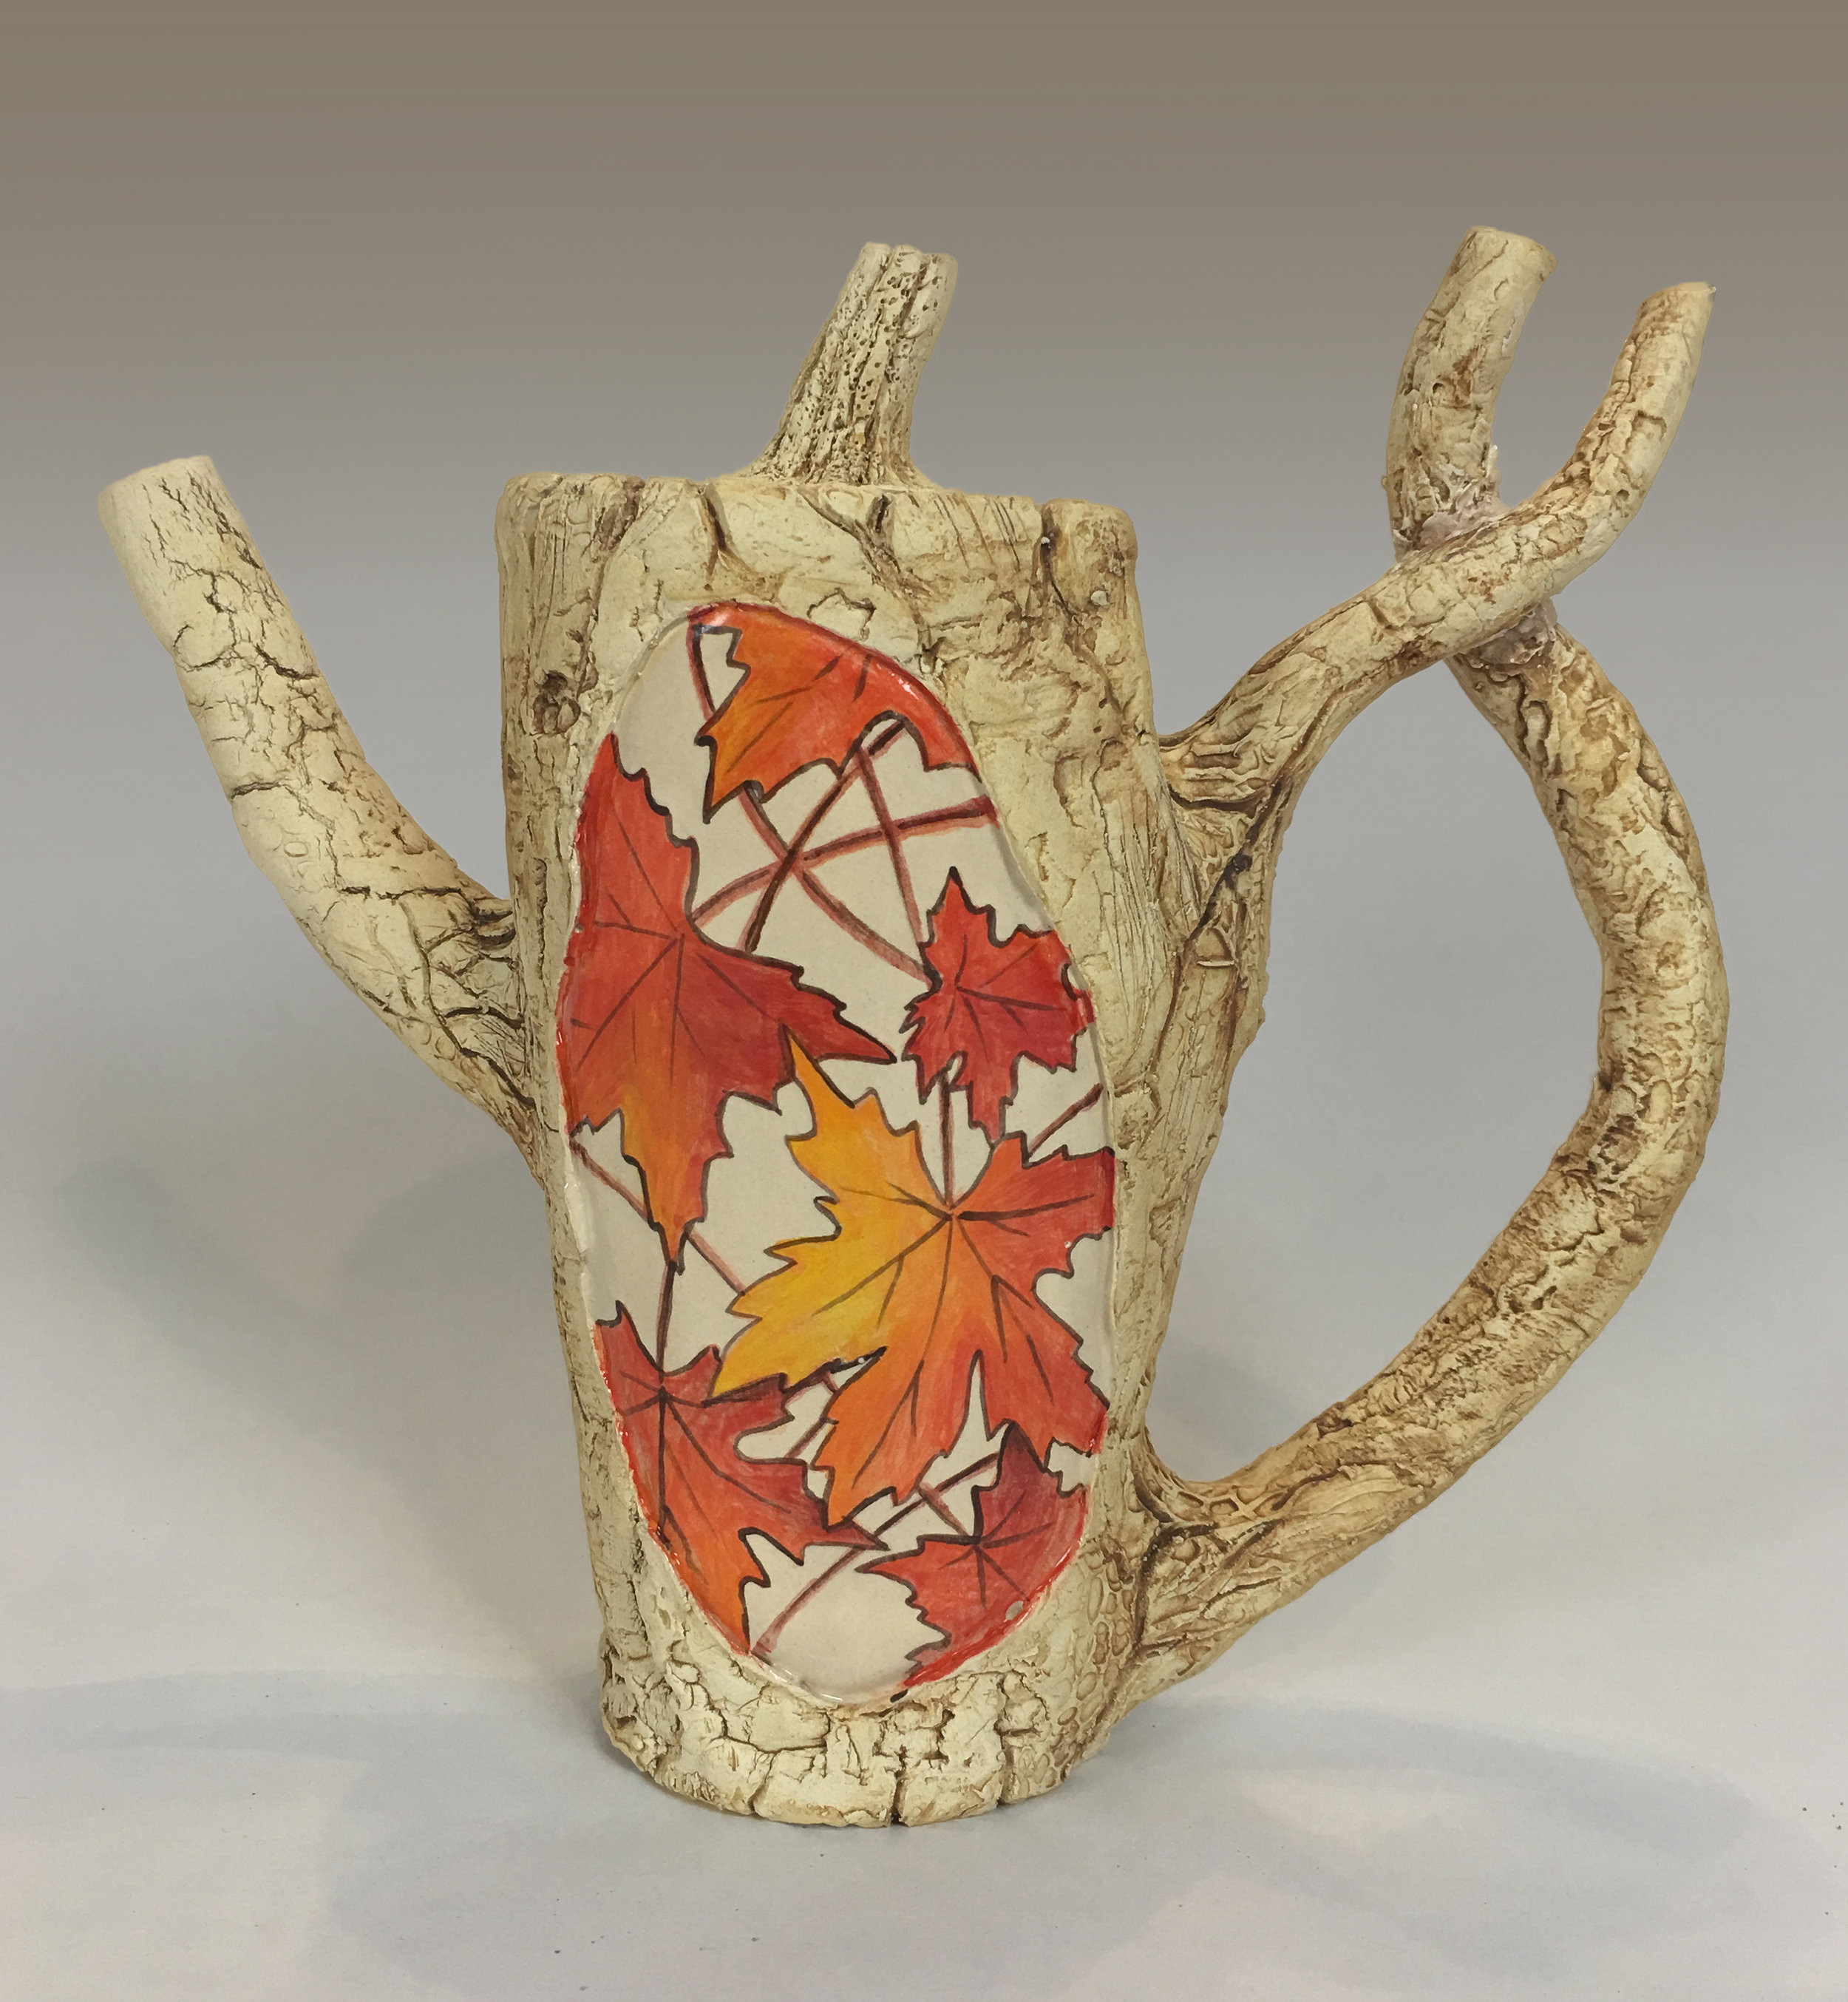 Marina_Smelik_Teapot with Maple Leaves.jpg